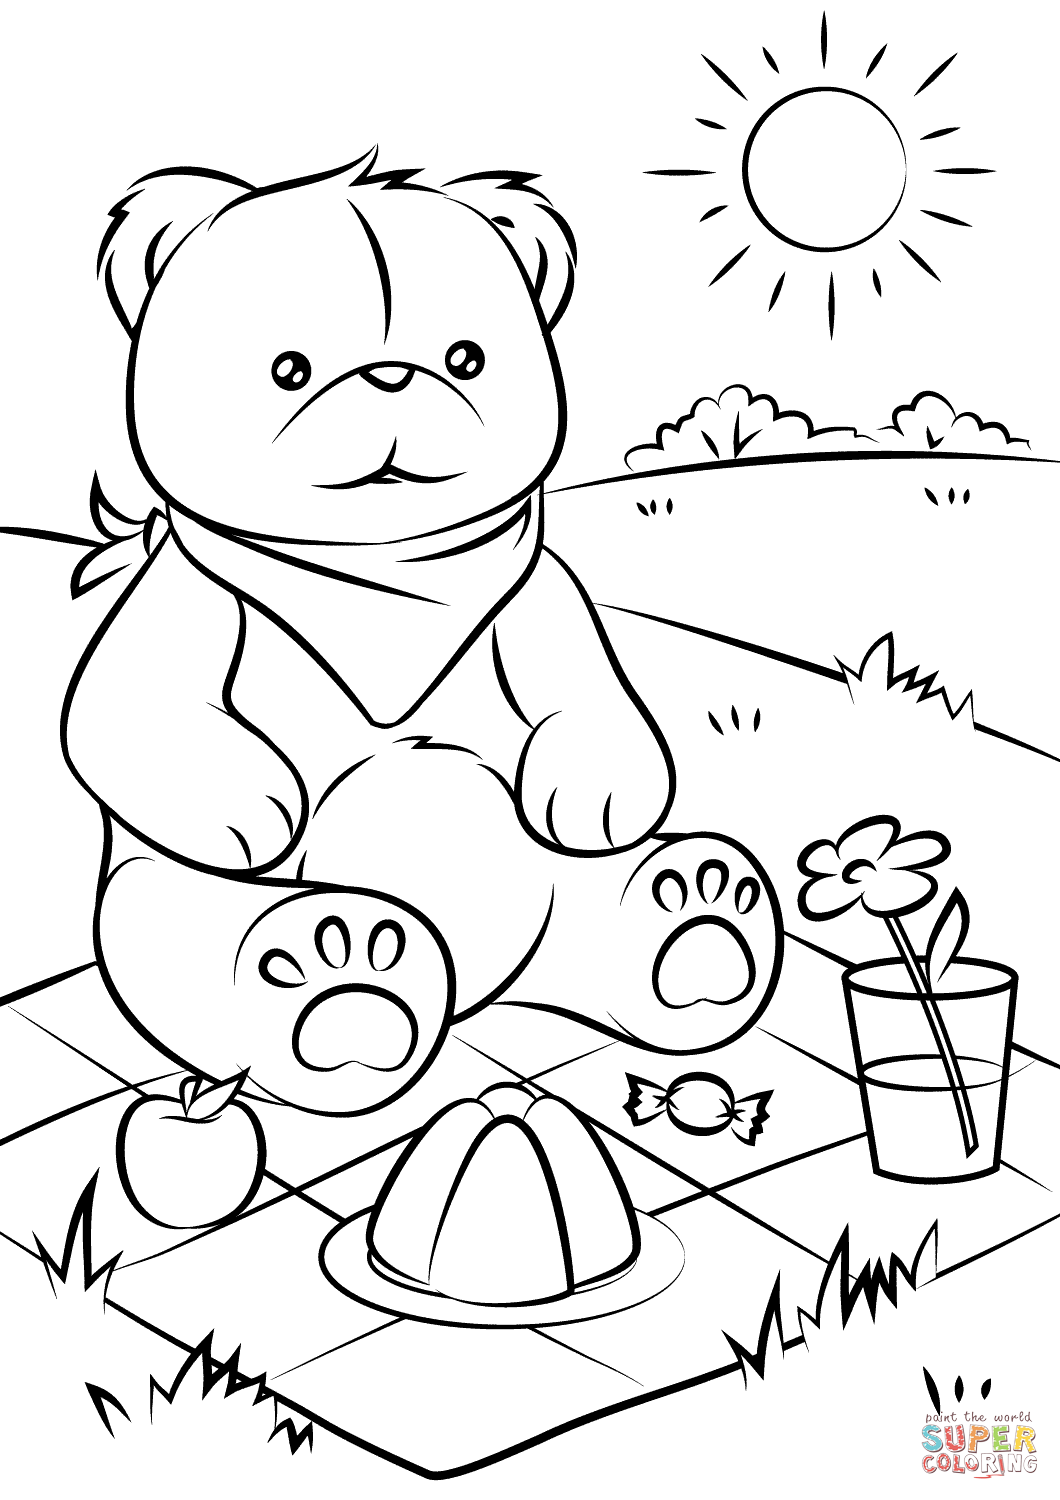 Teddy Bears 8217 Picnic Coloring Page Free Printable Coloring Pages